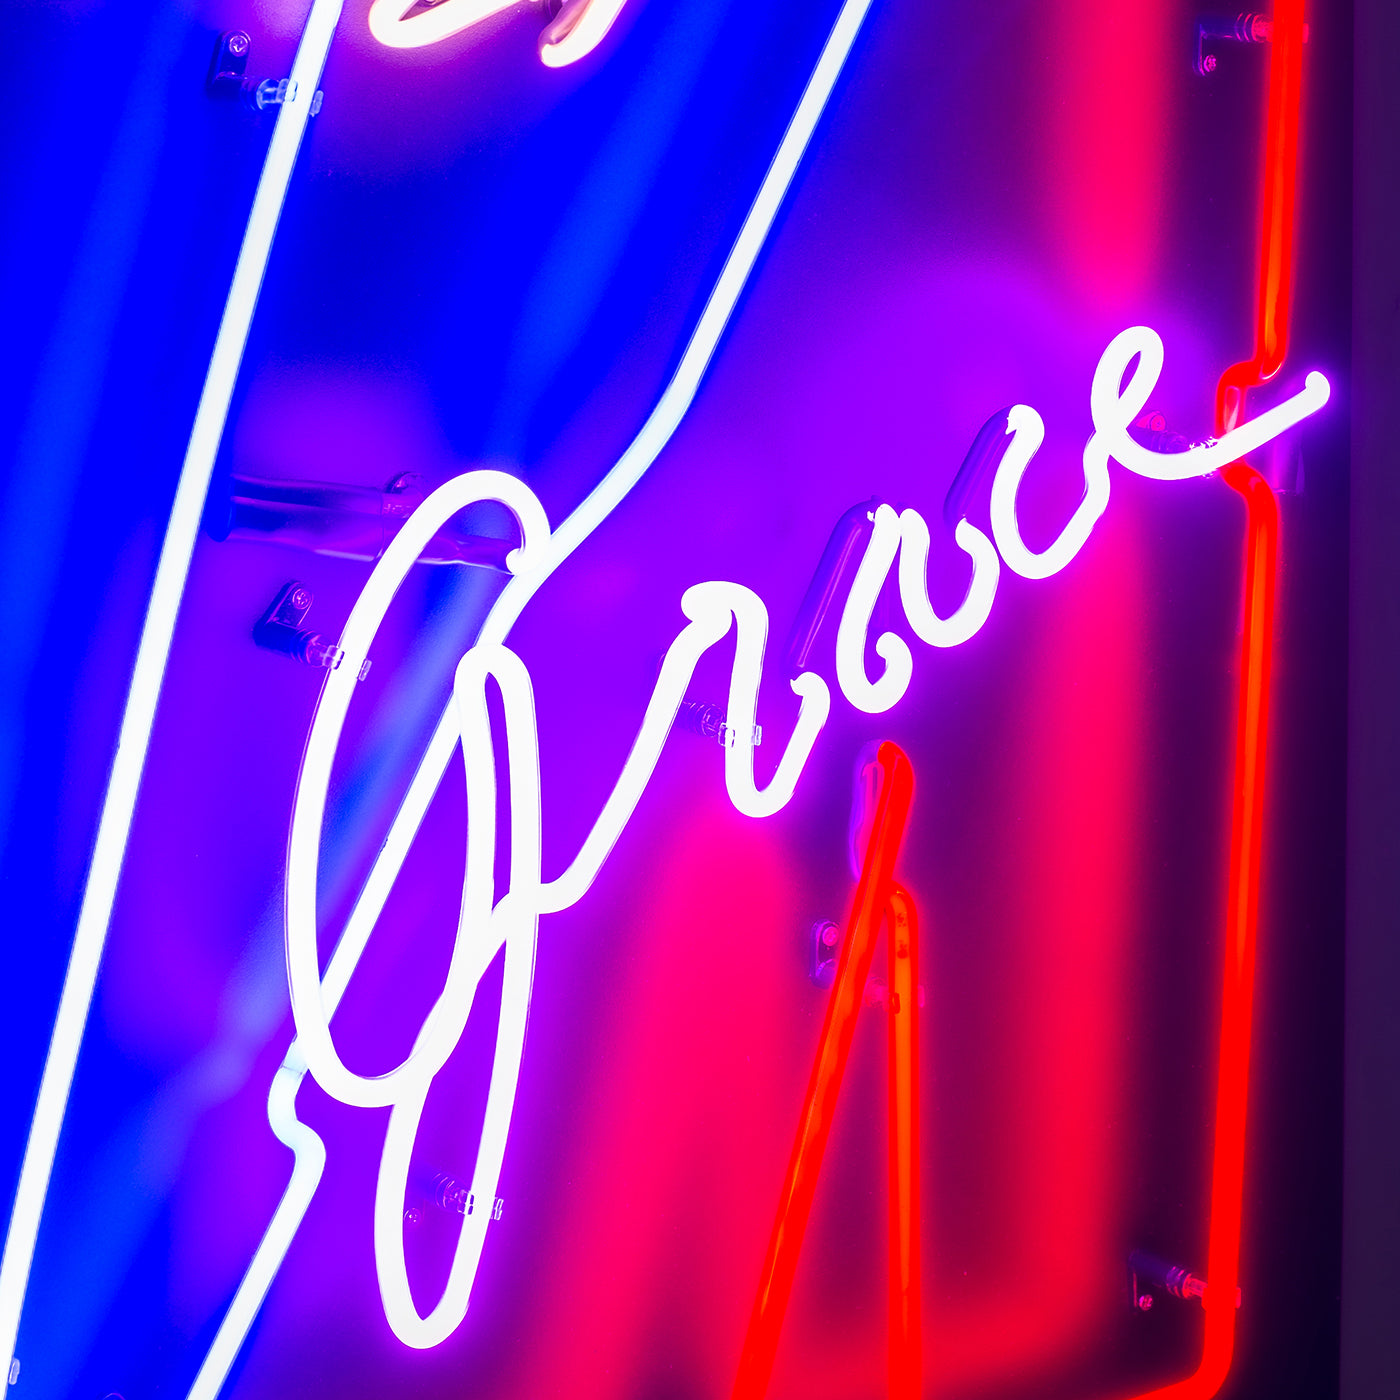 Grace: Honey Dijon x Marina Esmeraldo: Black Girl Magic - Neon - Hen's Teeth Store